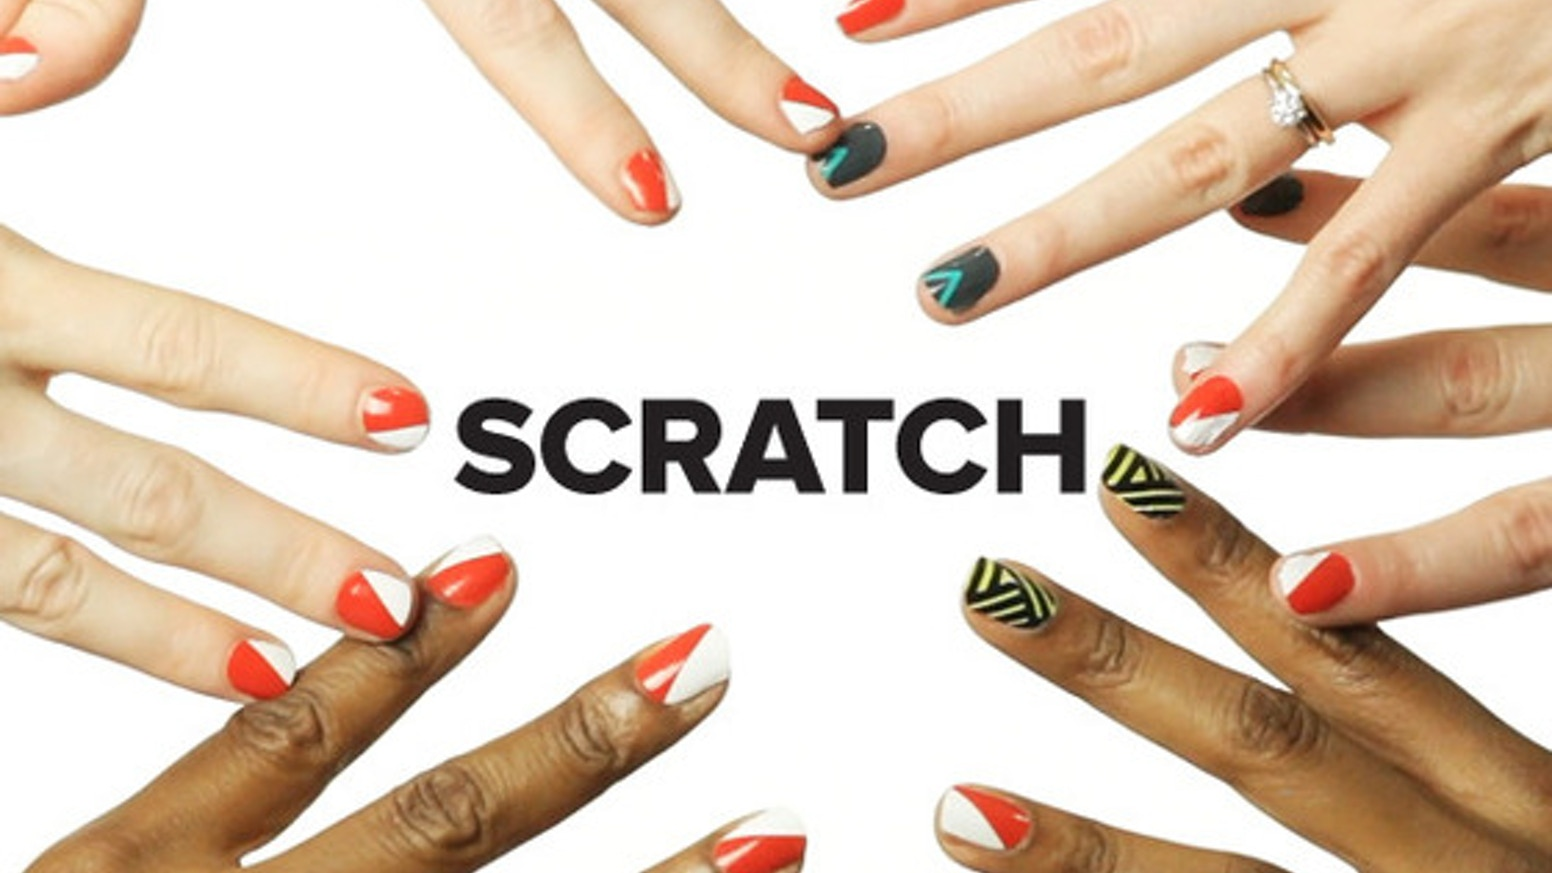 Nail wraps focused on good design and made by your favorite designers, nail artists and illustrators!